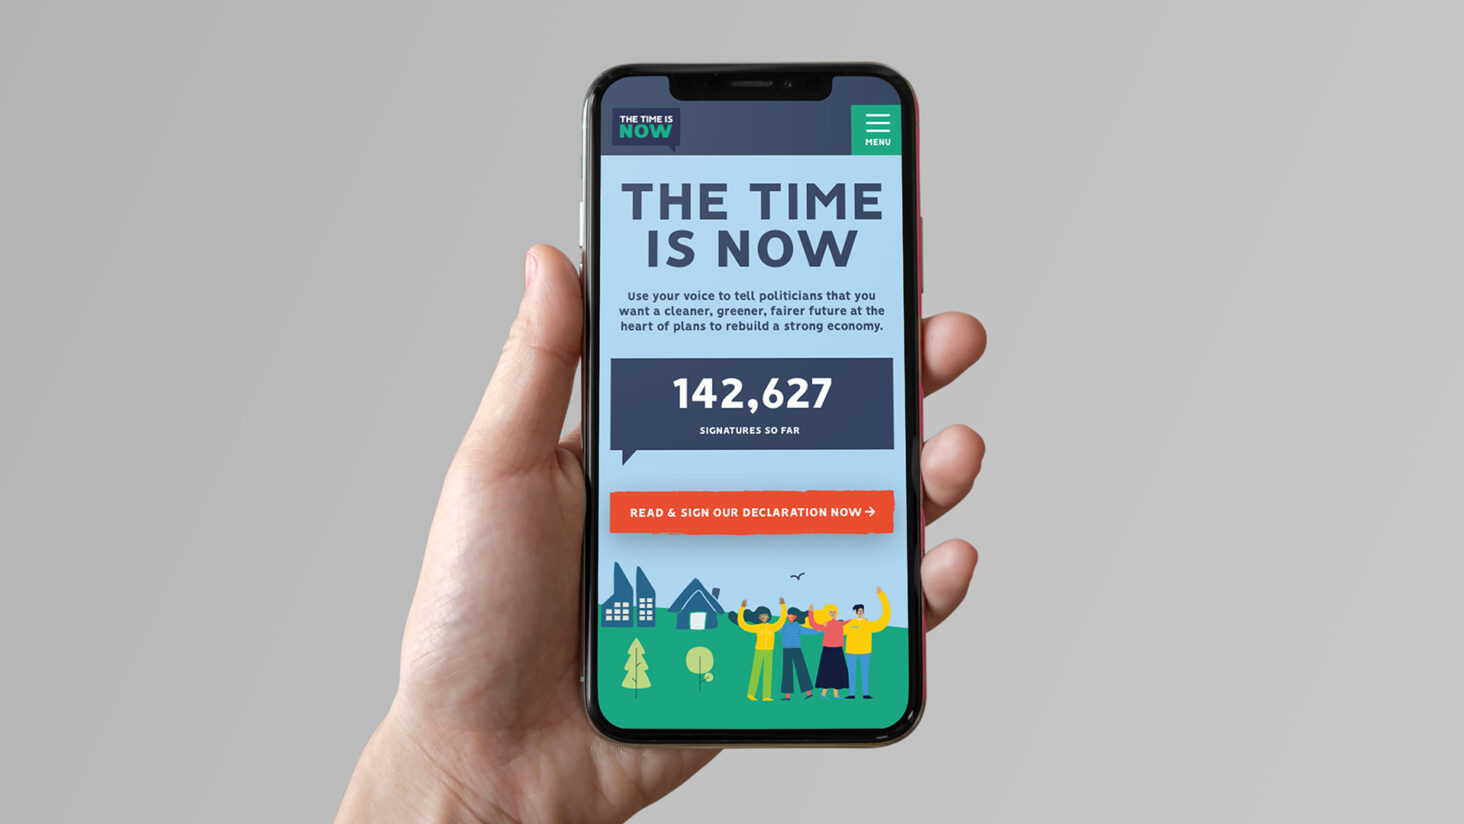 Image for The Time is Now website on an iPhone